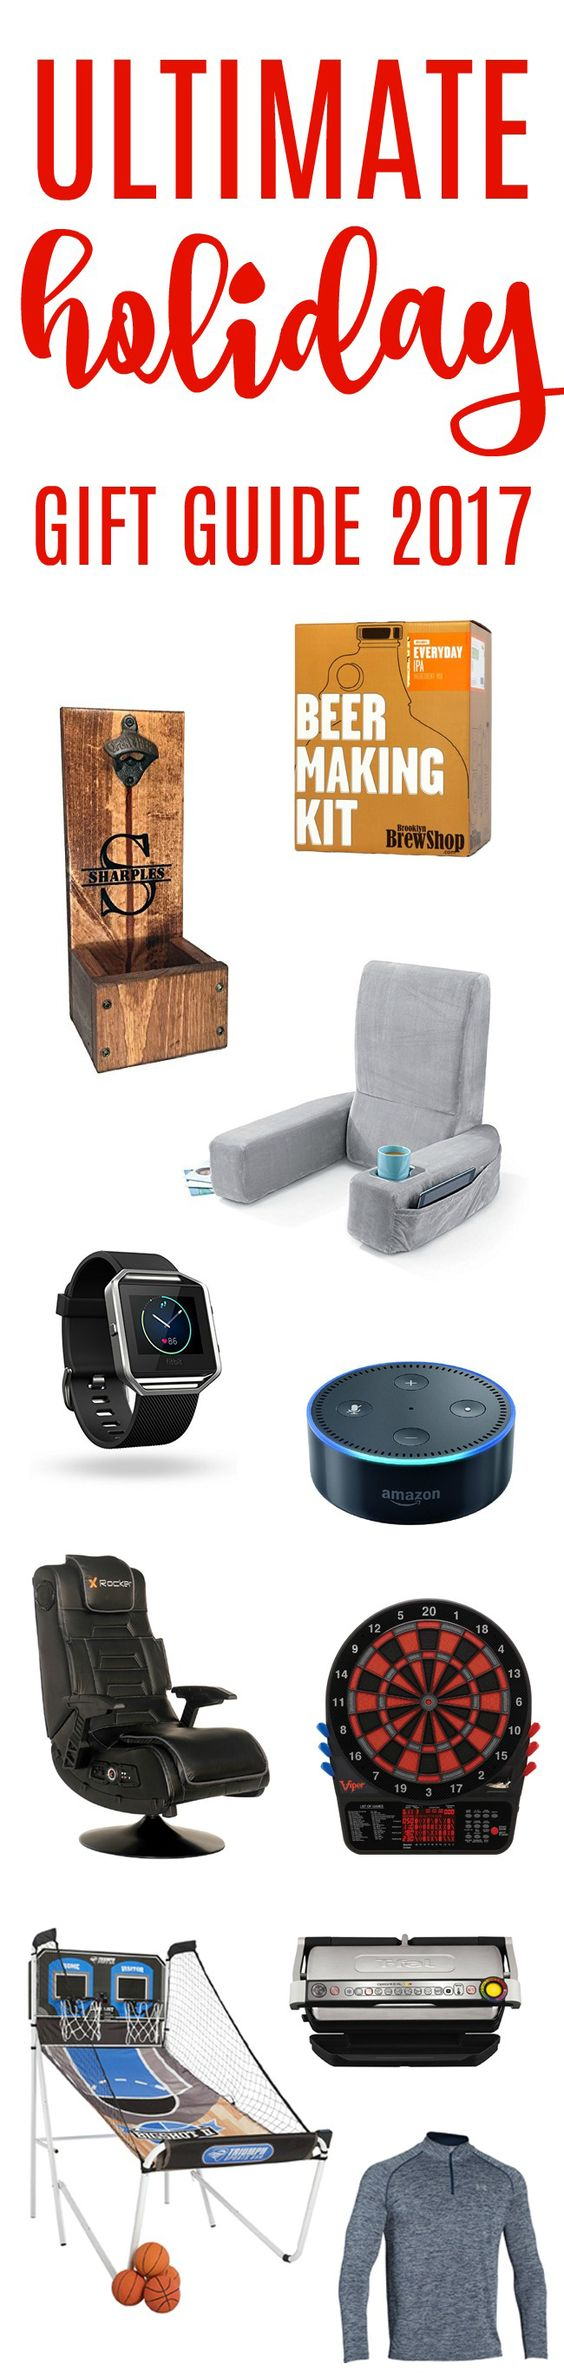 Ultimate Holiday Gift Guide For Men